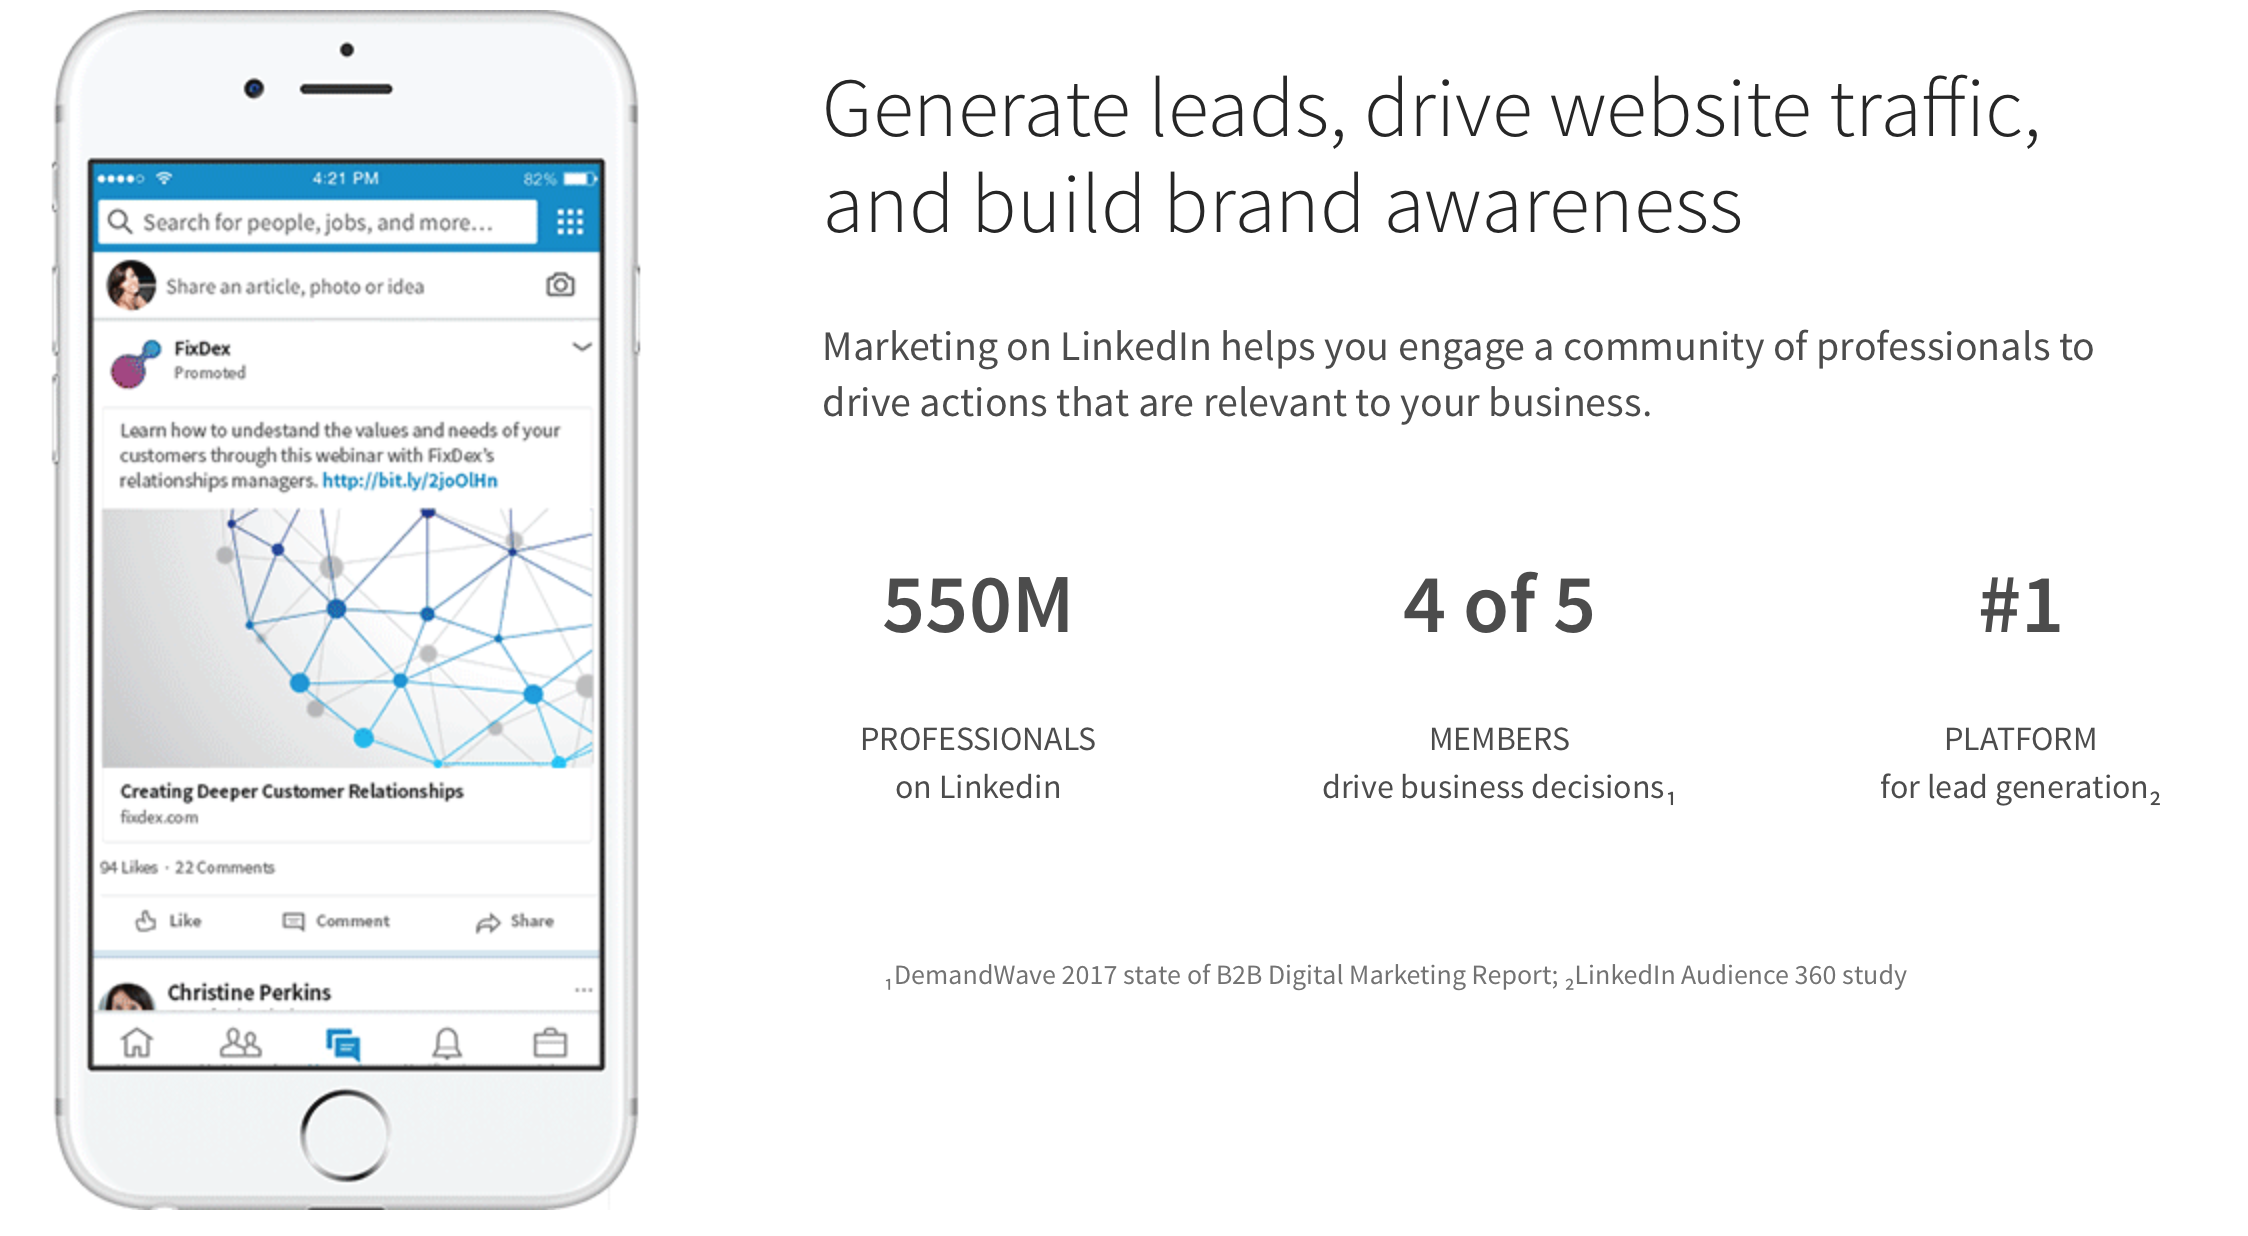 Learn more about LinkedIn's Marketing Features